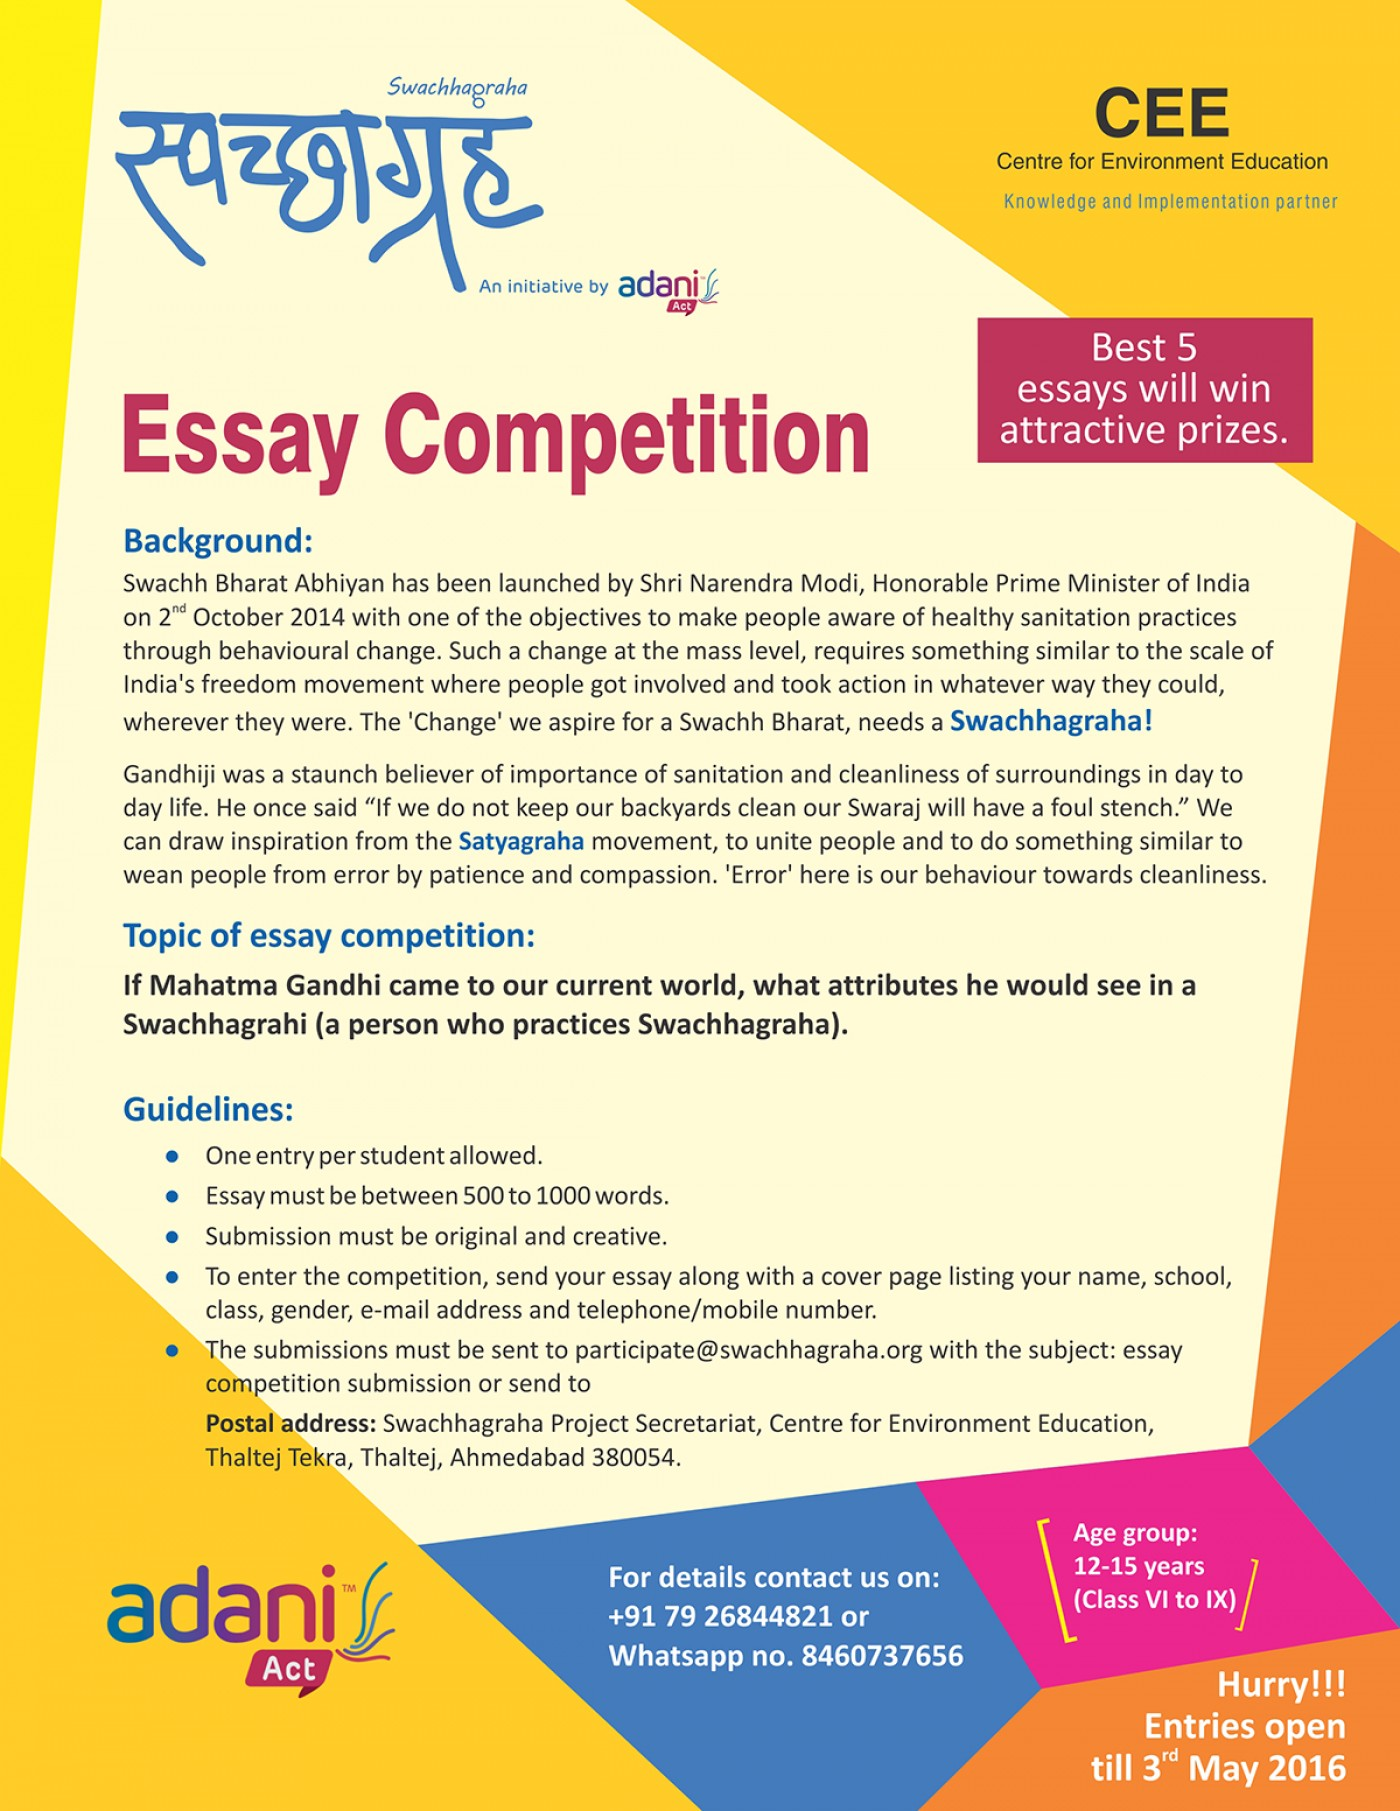 011 20180129171946essay20competition Essay About Cleanliness In School Phenomenal On Toilet And Its Surrounding Writing Hygiene Practices 1400